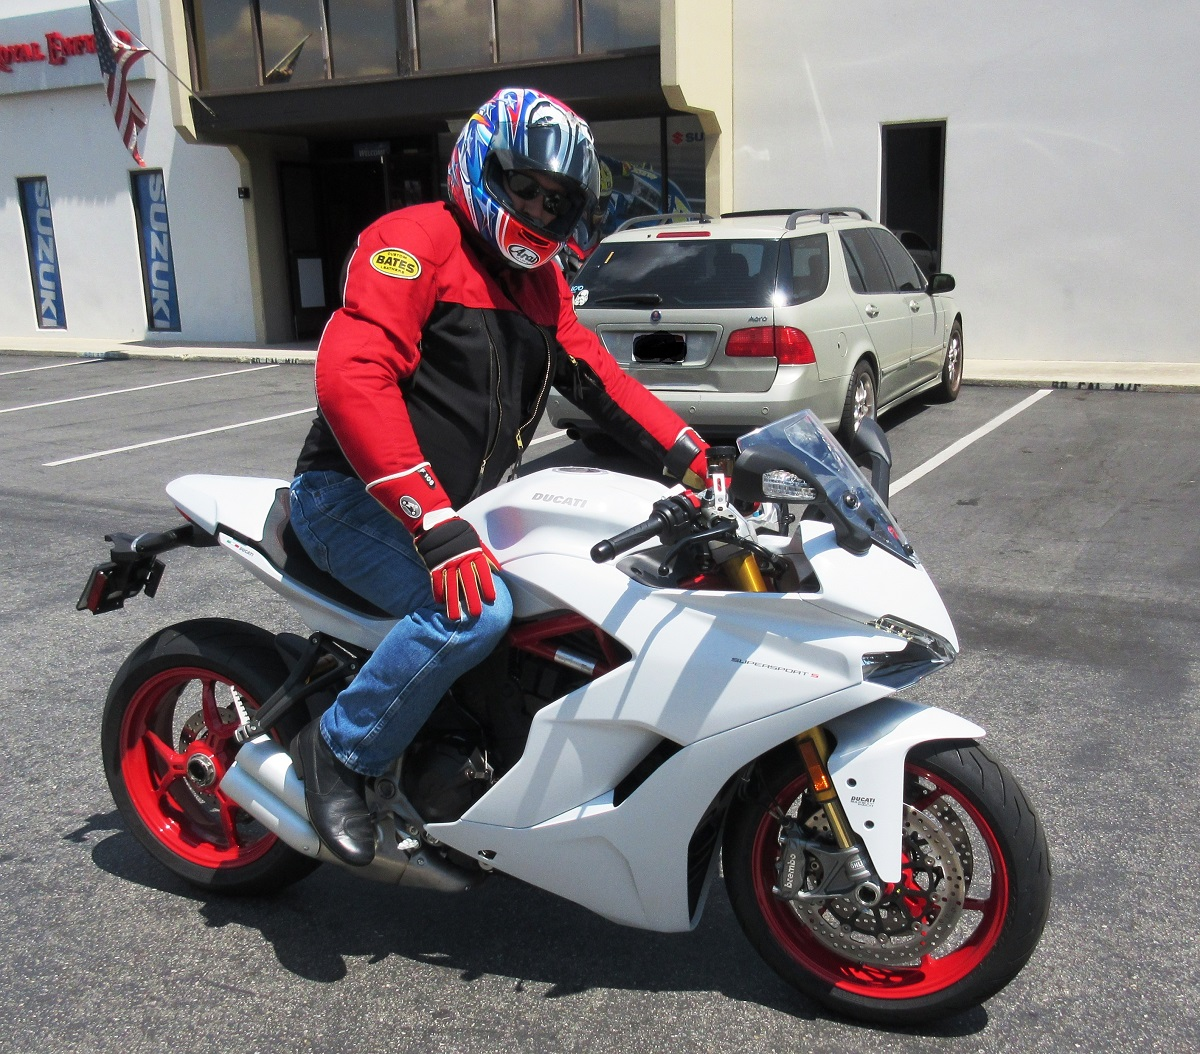 my testride on the new 939ss supersport - ducati.ms - the ultimate